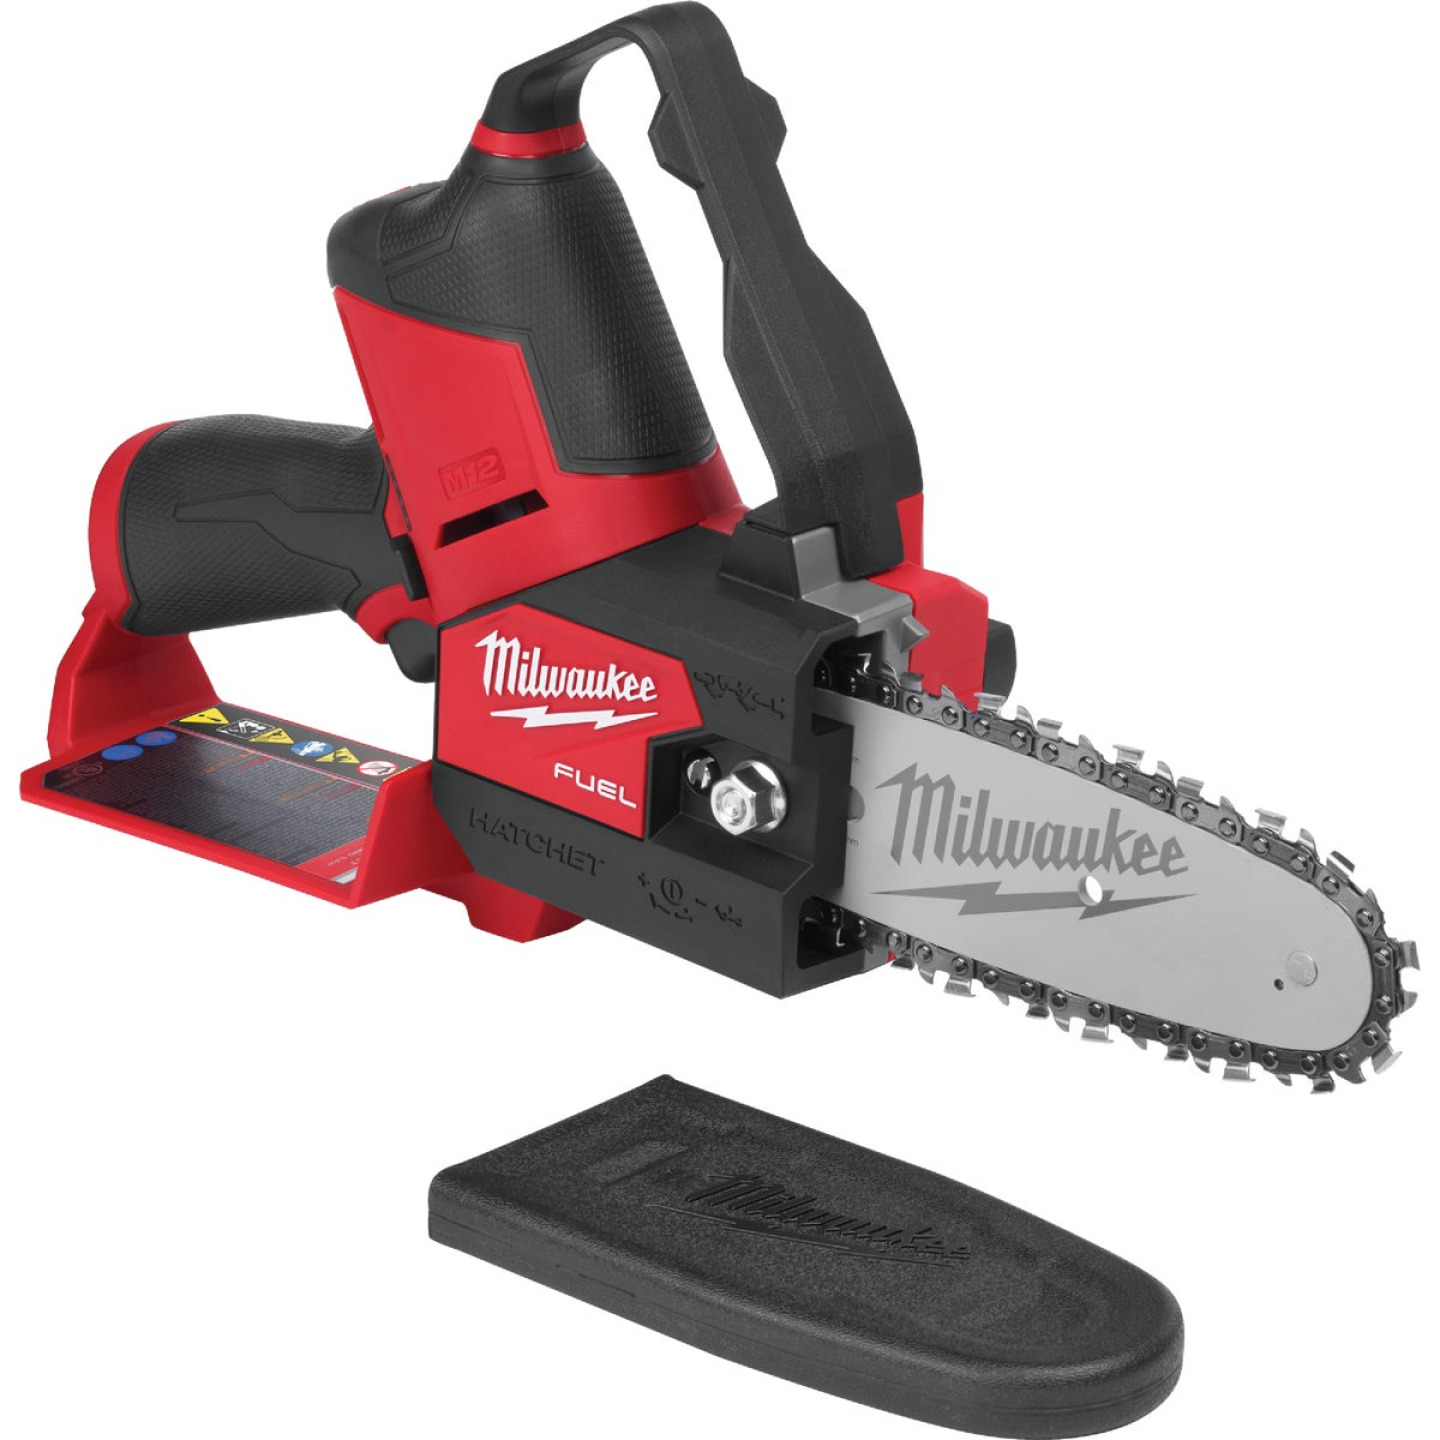 Milwaukee M12 Fuel Hatchet 6 In. Pruning Saw (Tool-Only) Image 1